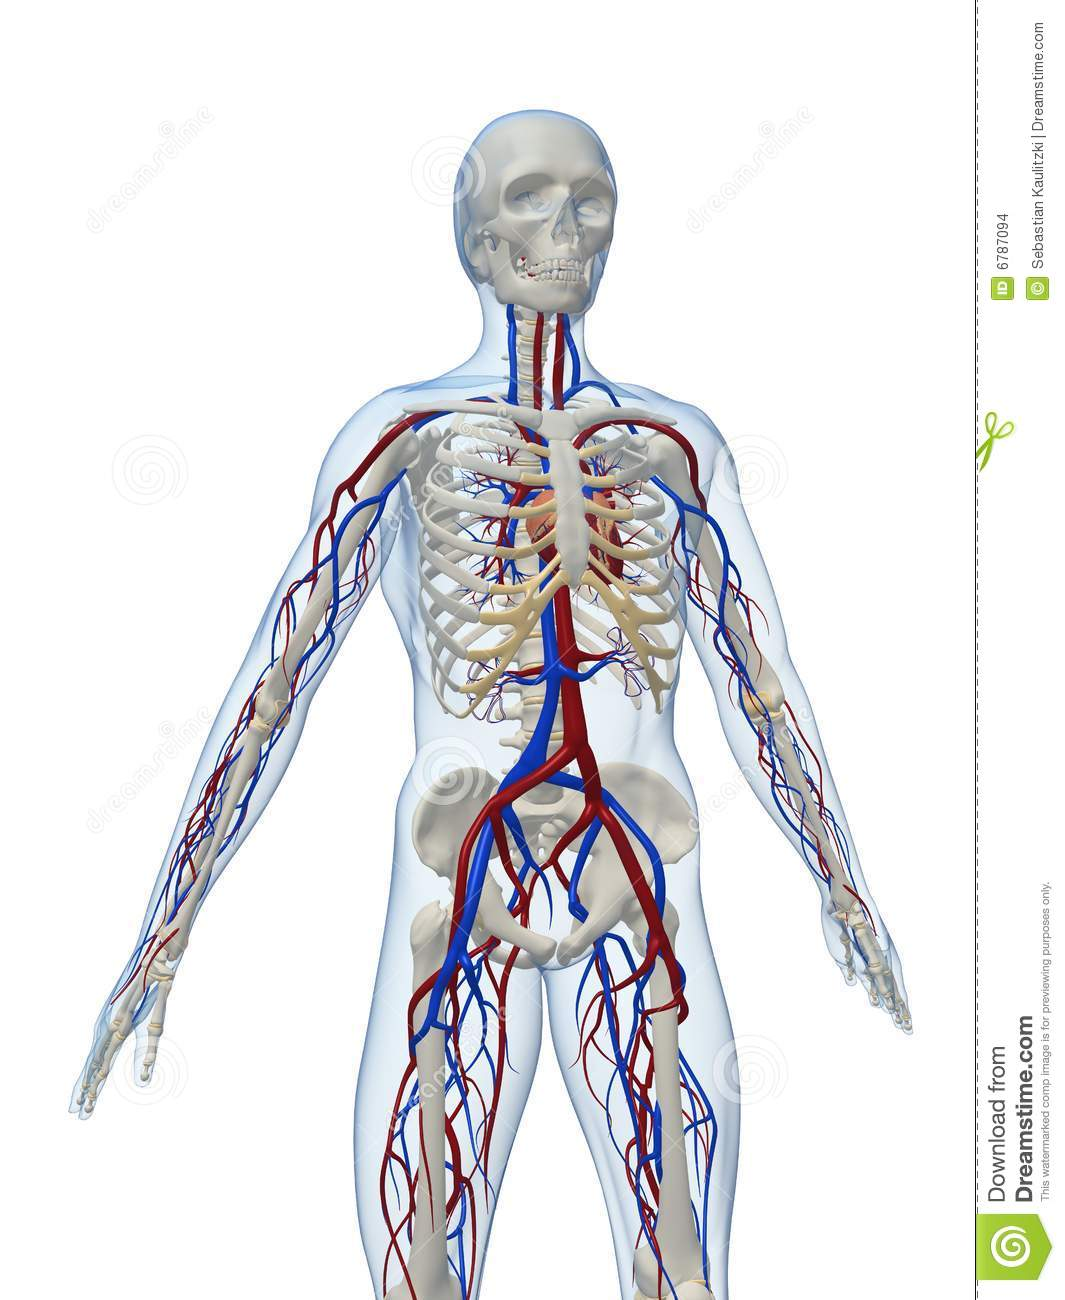 Blood Vessels In Brain further Arteries And Veins Diagram To Label Anatomy Of Arteries And Veins Arteries And Veins Of The Body furthermore Love Plastinated also Body Diagram Of Arteries as well Download. on human brain circulatory system